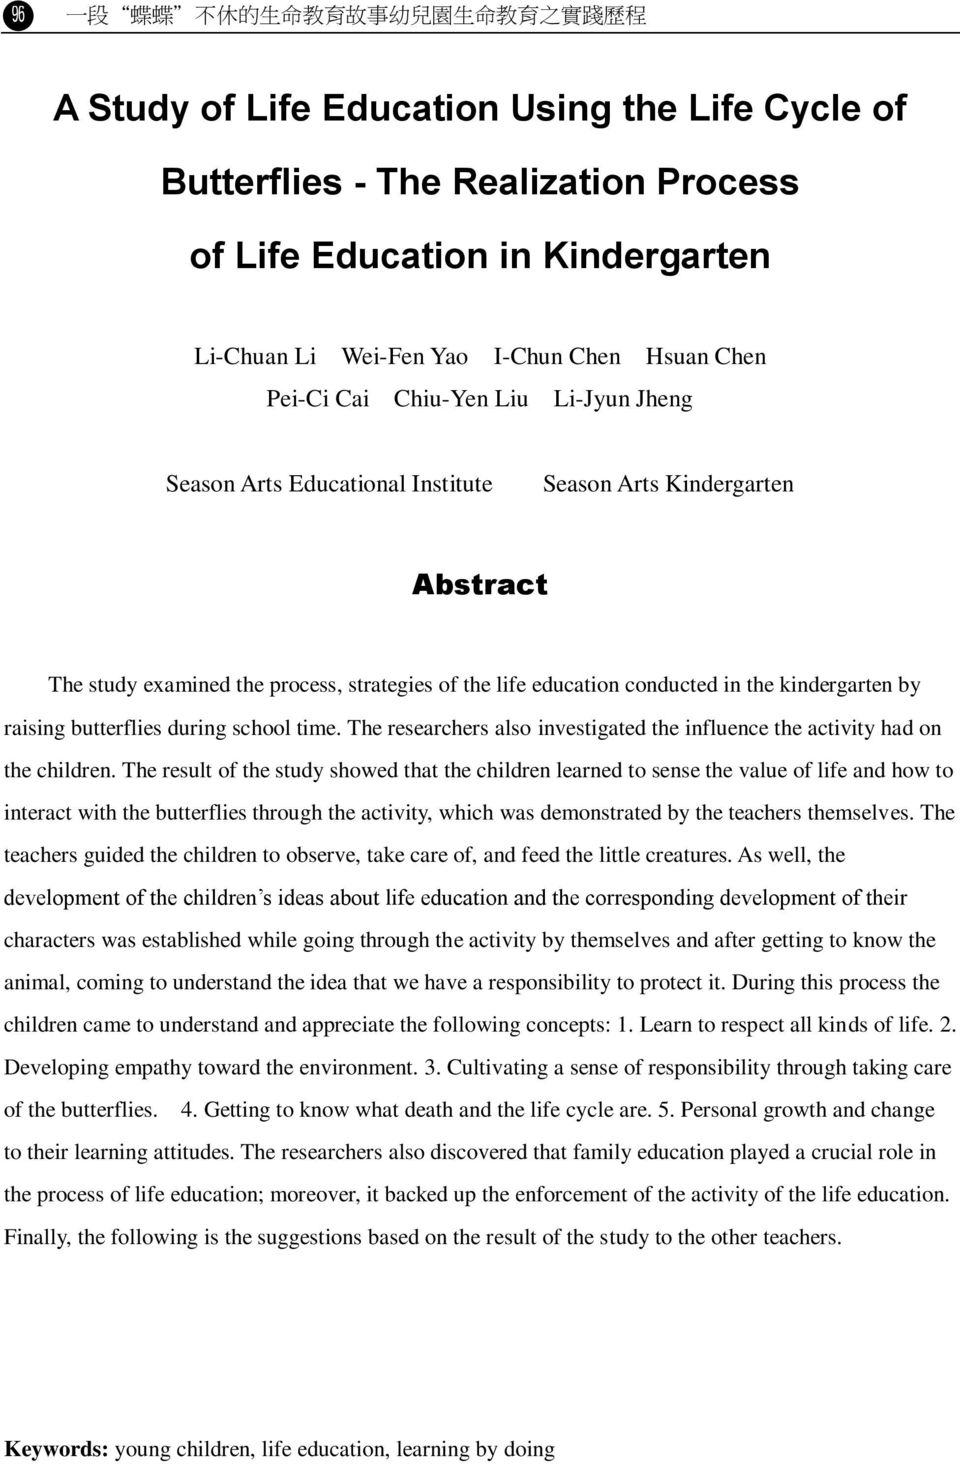 conducted in the kindergarten by raising butterflies during school time. The researchers also investigated the influence the activity had on the children.